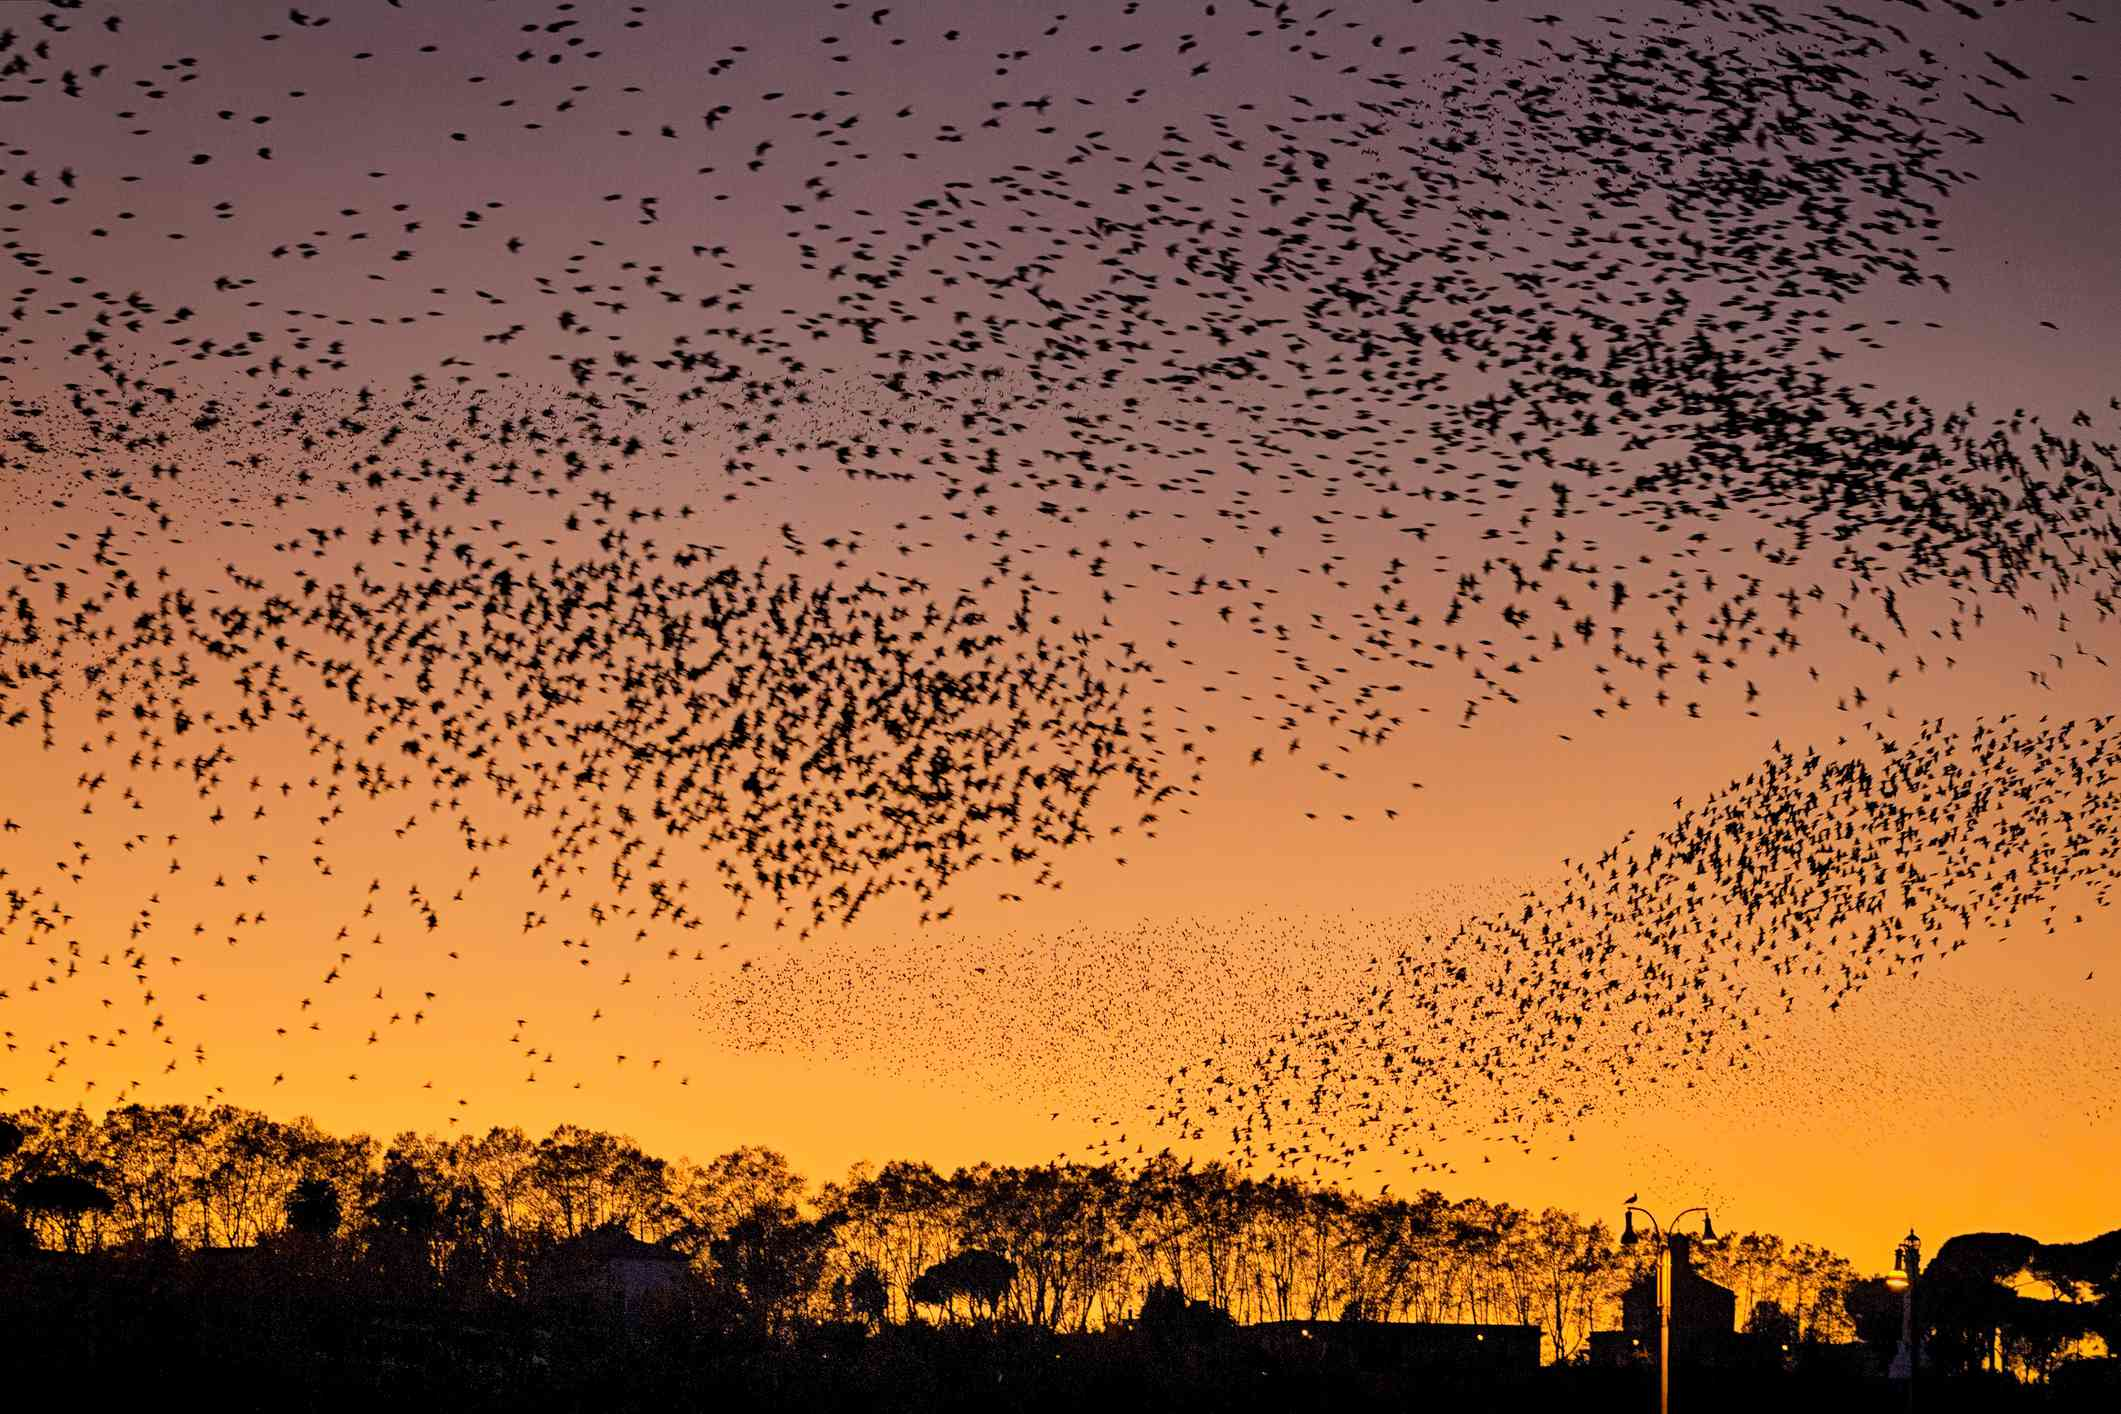 a large flock of European starlings cover much of the sky at sunset over a field to trees near Rome